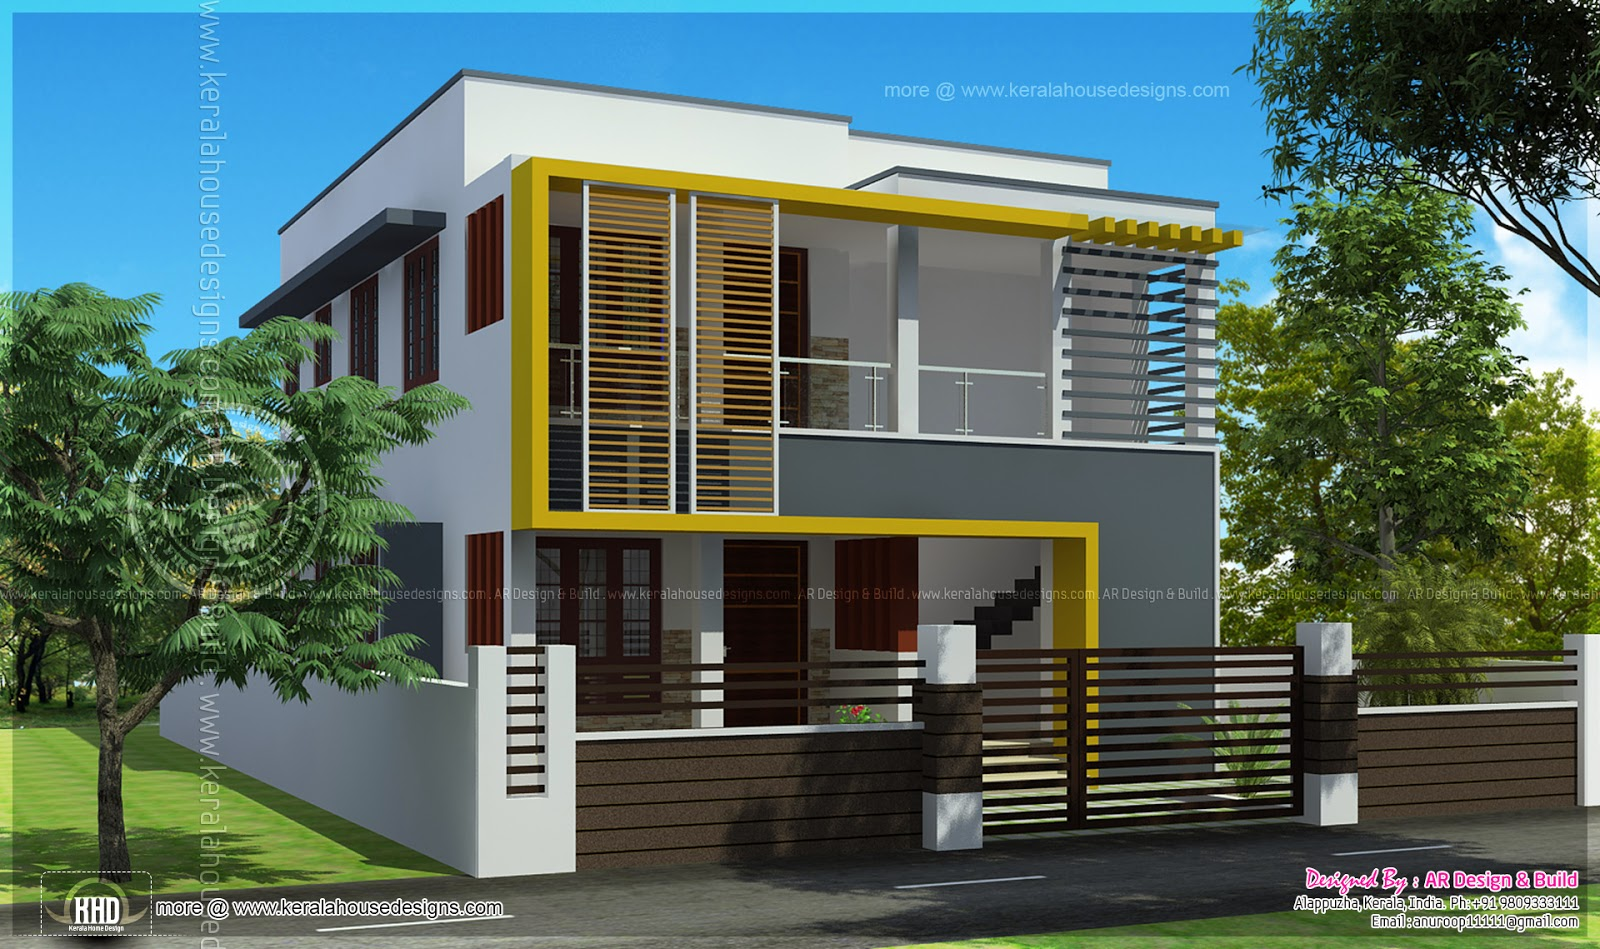 Duplex house elevation 1000 sq feet each kerala home for Kerala home design 1000 sq feet